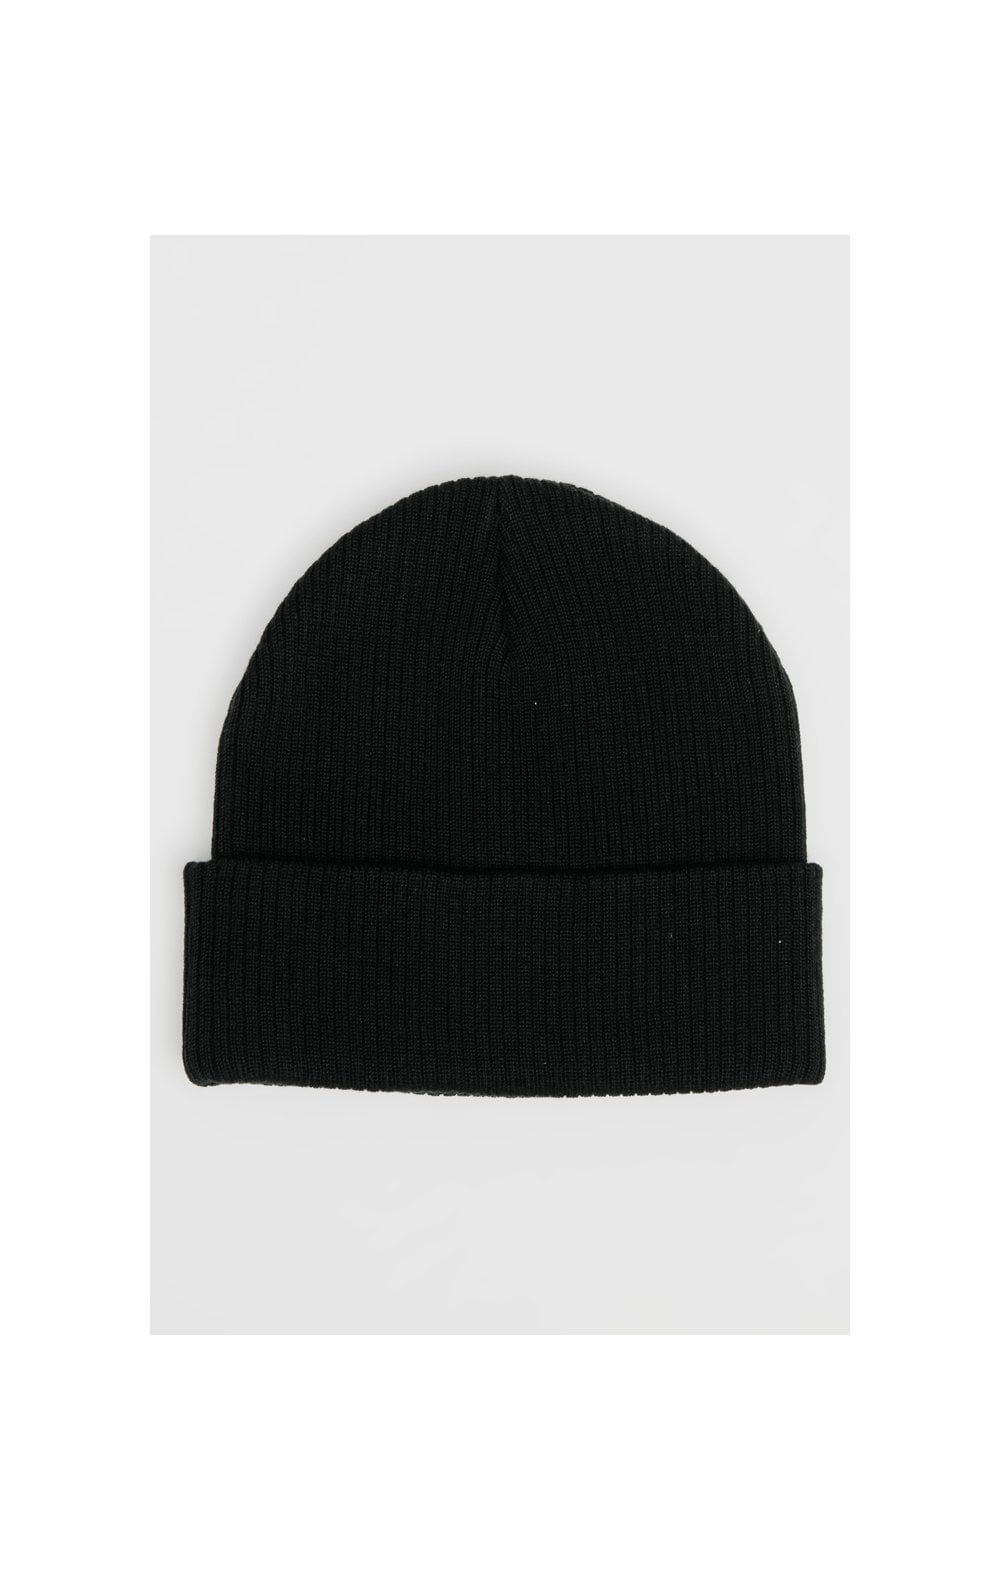 SikSilk x Dani Alves Beanie – Black (1)